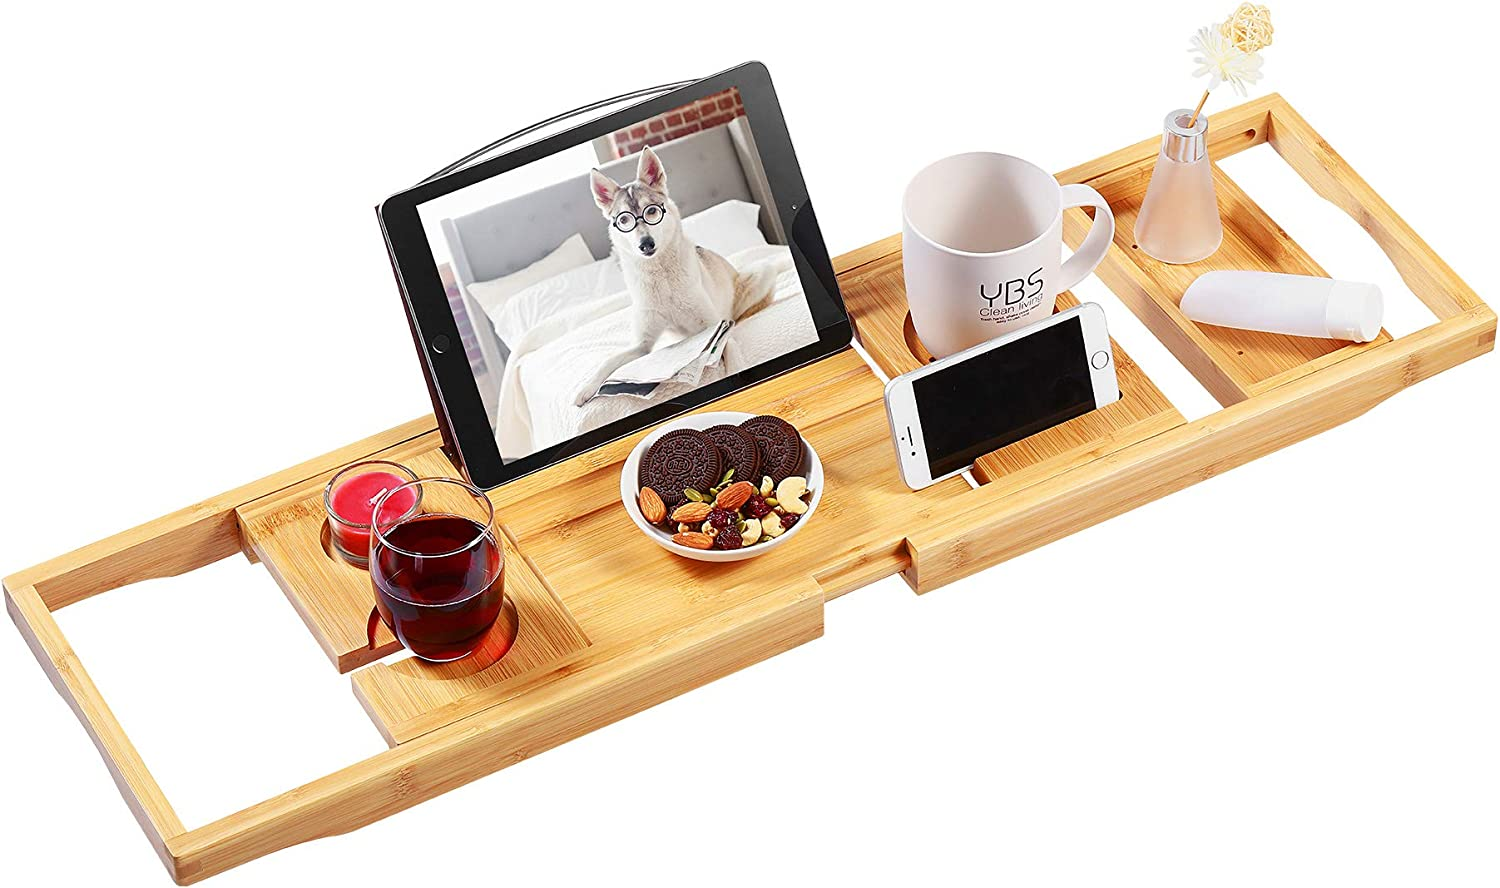 Amazon Com Bamboo Bathtub Caddy Tray Expandable Bath Tray For Tub With Upgraded Wine Slots And Book Holder Ideal For One Or Two Person Use Kitchen Dining